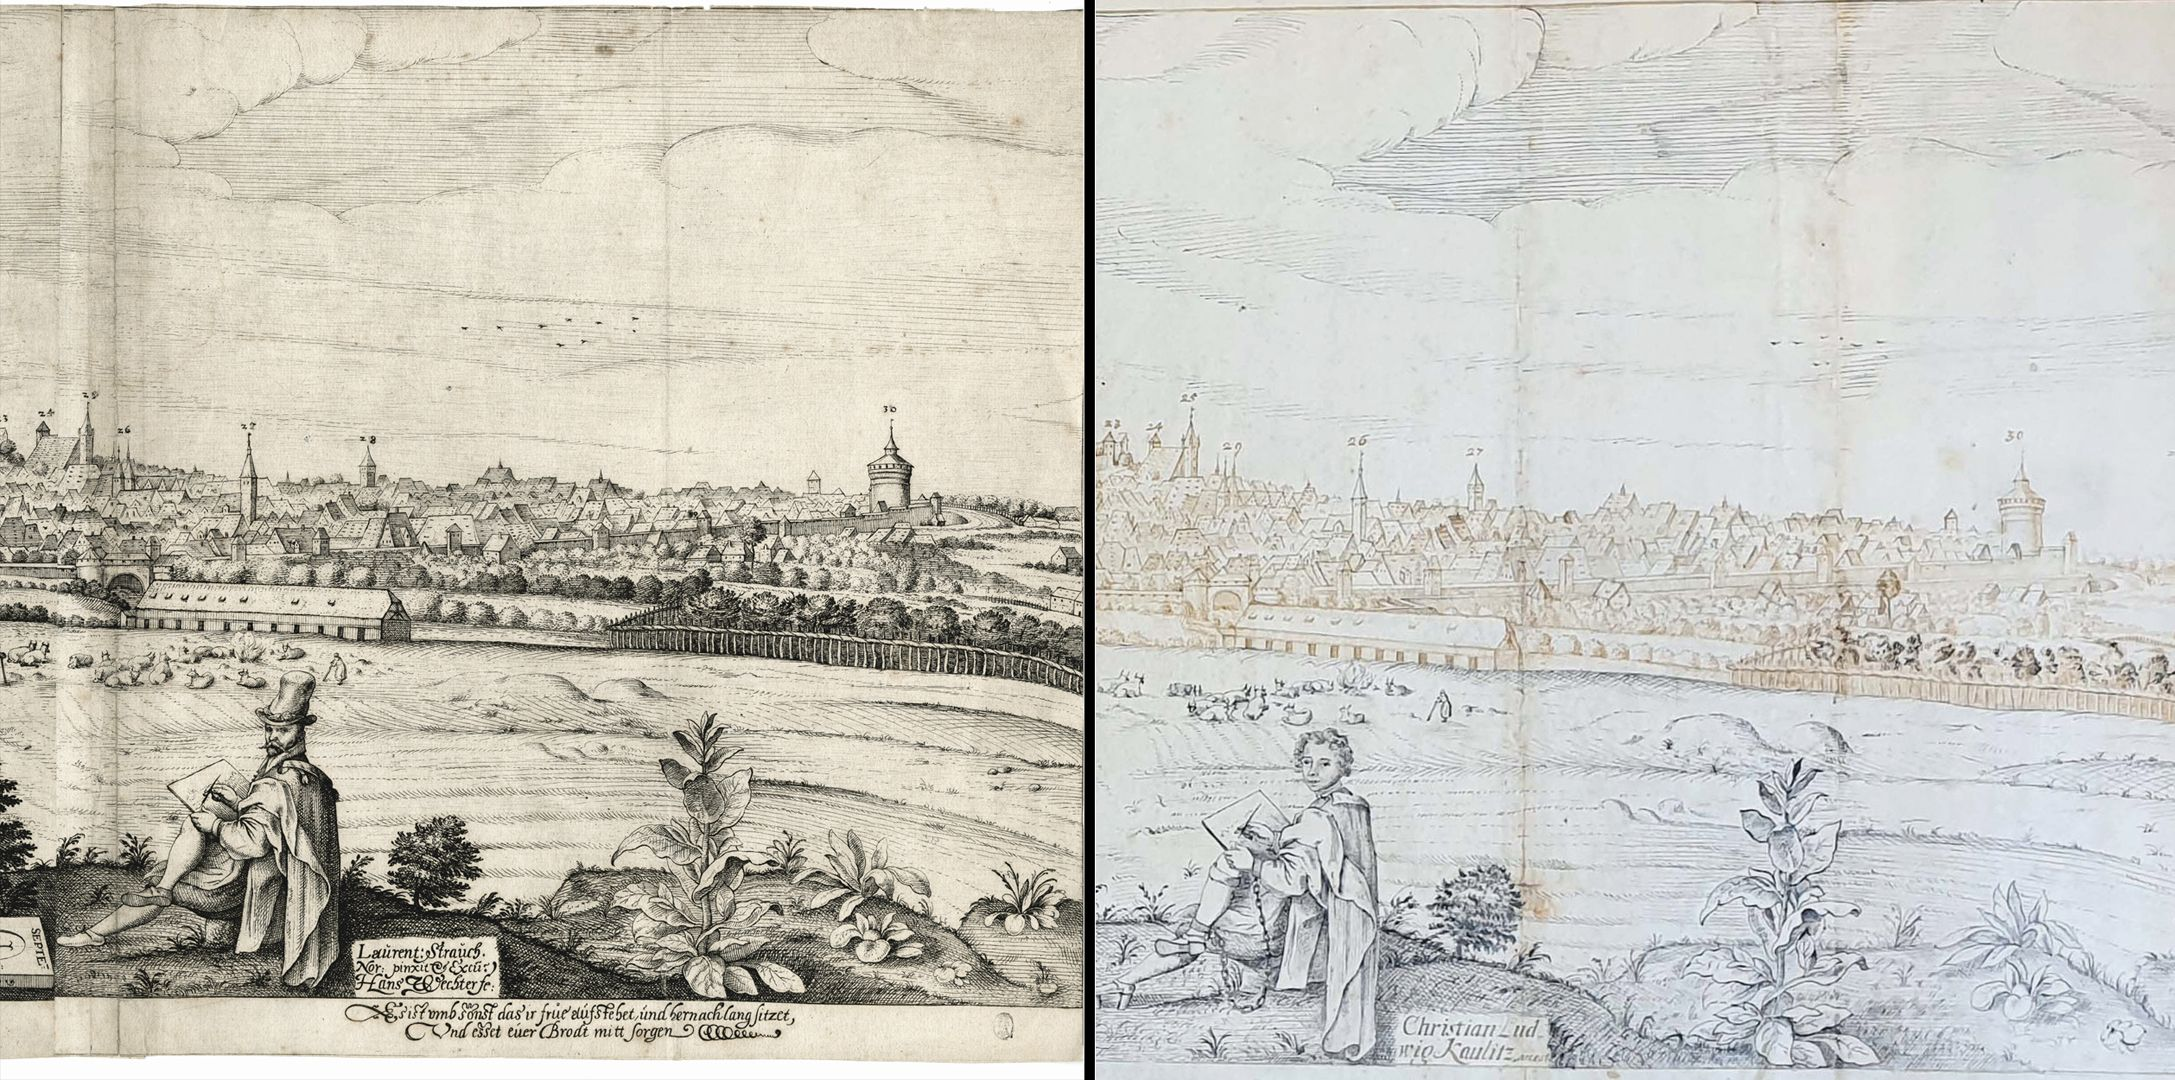 Imperial City of Nuremberg against the Rise of the Sun (east) Comparison of images: on the left copperplate engraving by Wechter, on the right pen and ink drawing of Kaulitz, he is sitting in chains and the word Arrest(atus) is added to his name to indicate his imprisonment.